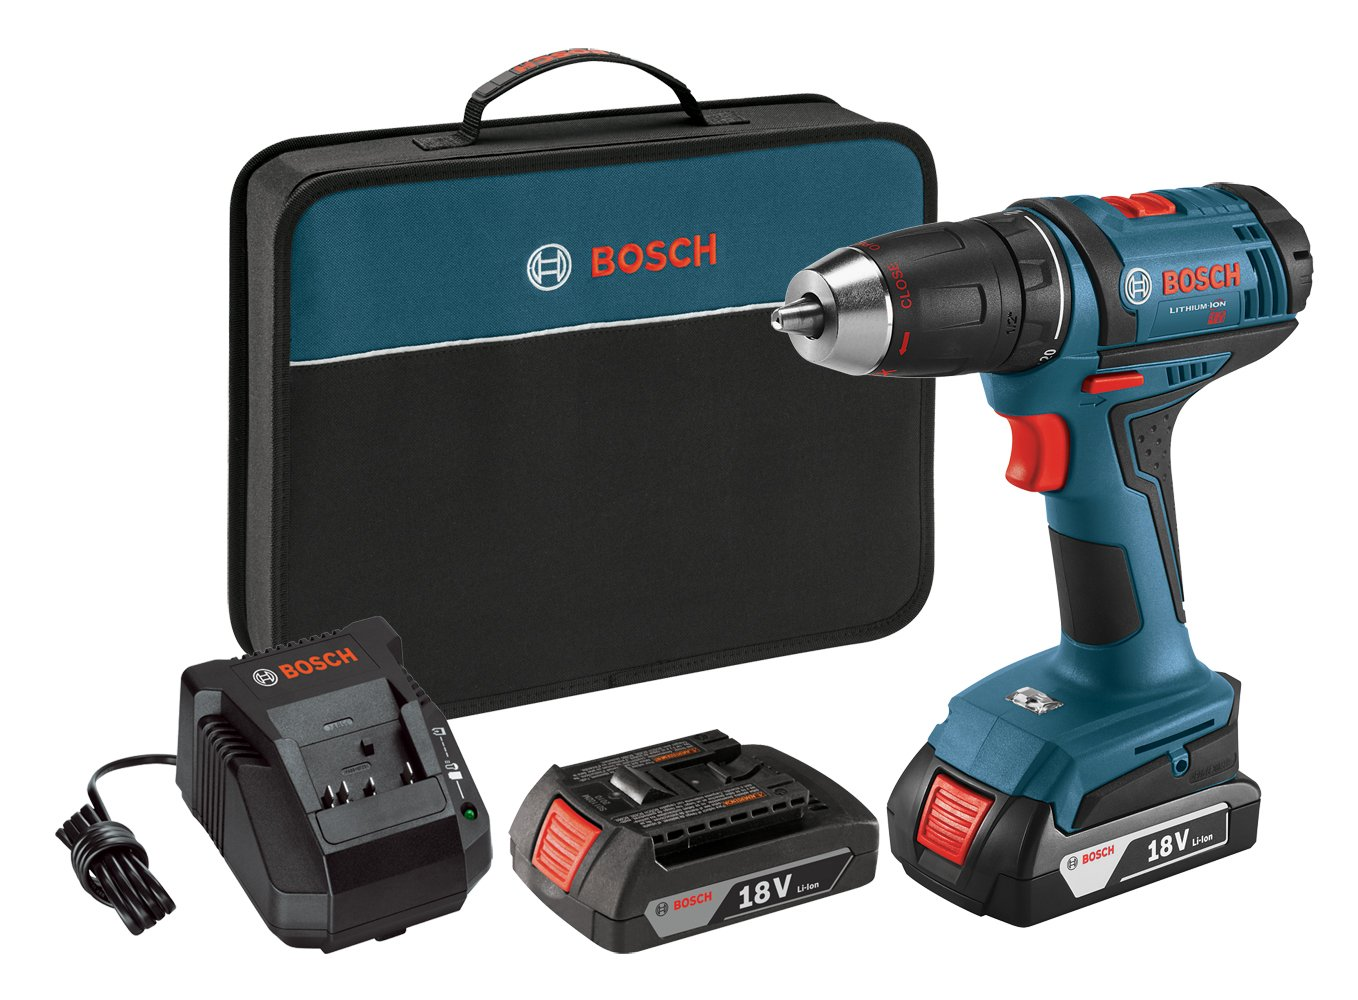 Bosch Power Tool Drill Kit